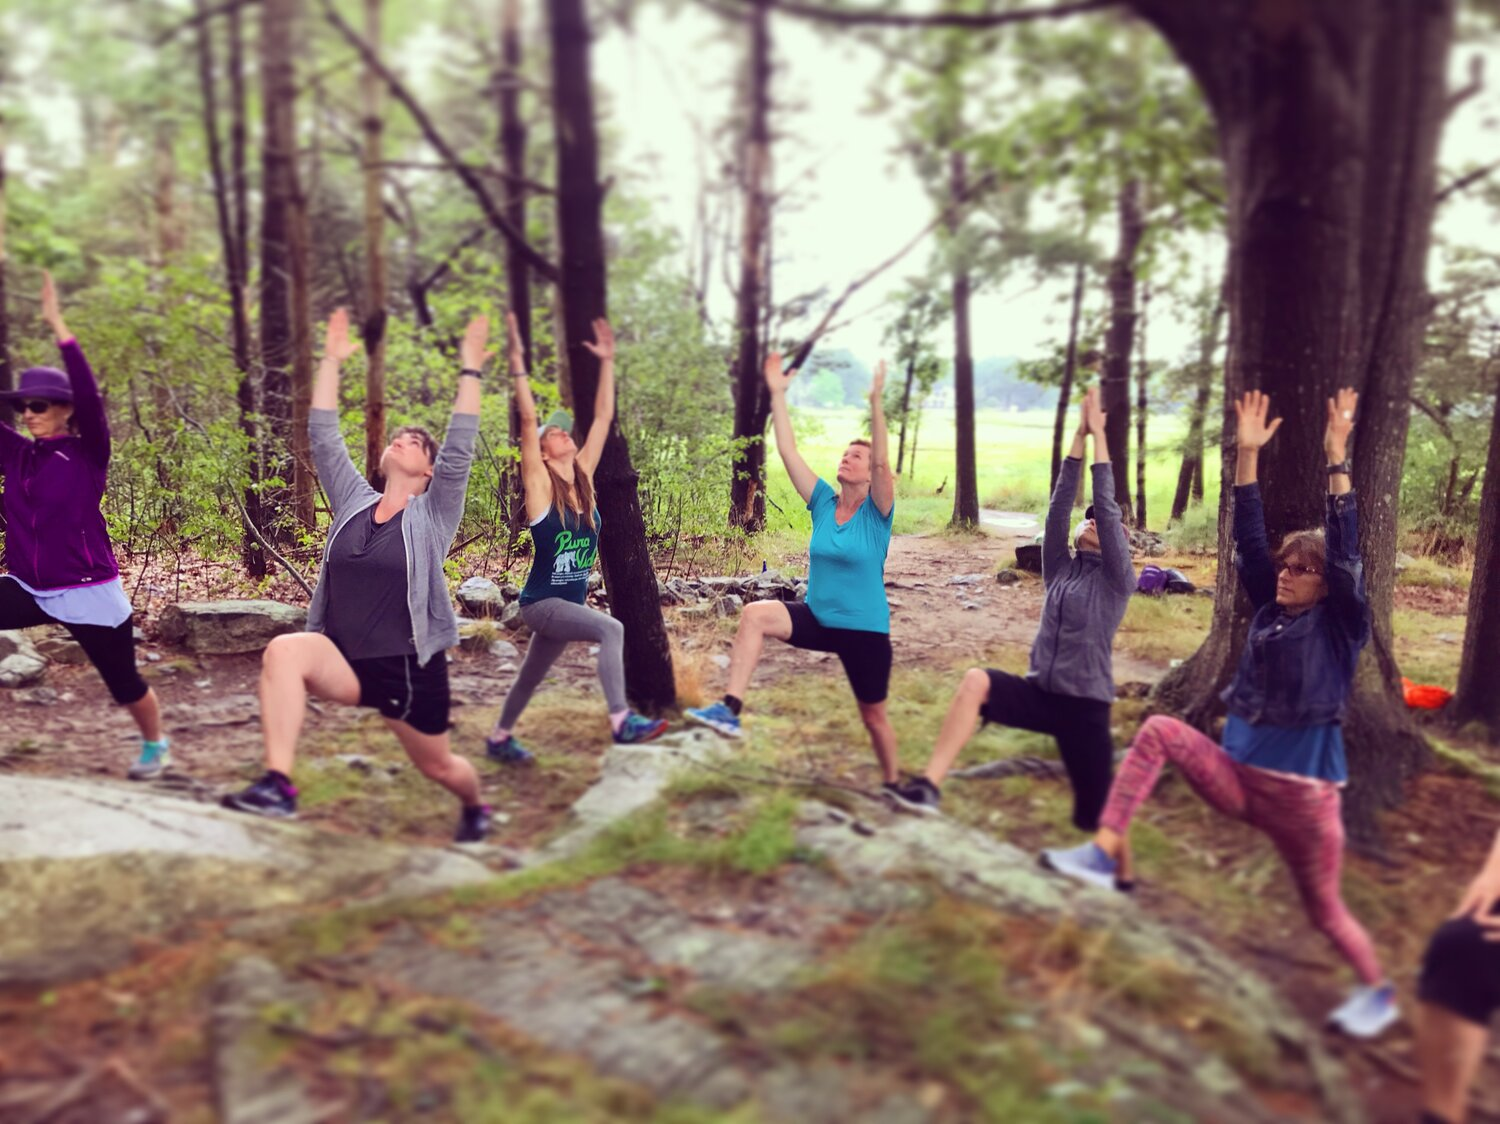 People in the woods in a yoga posture